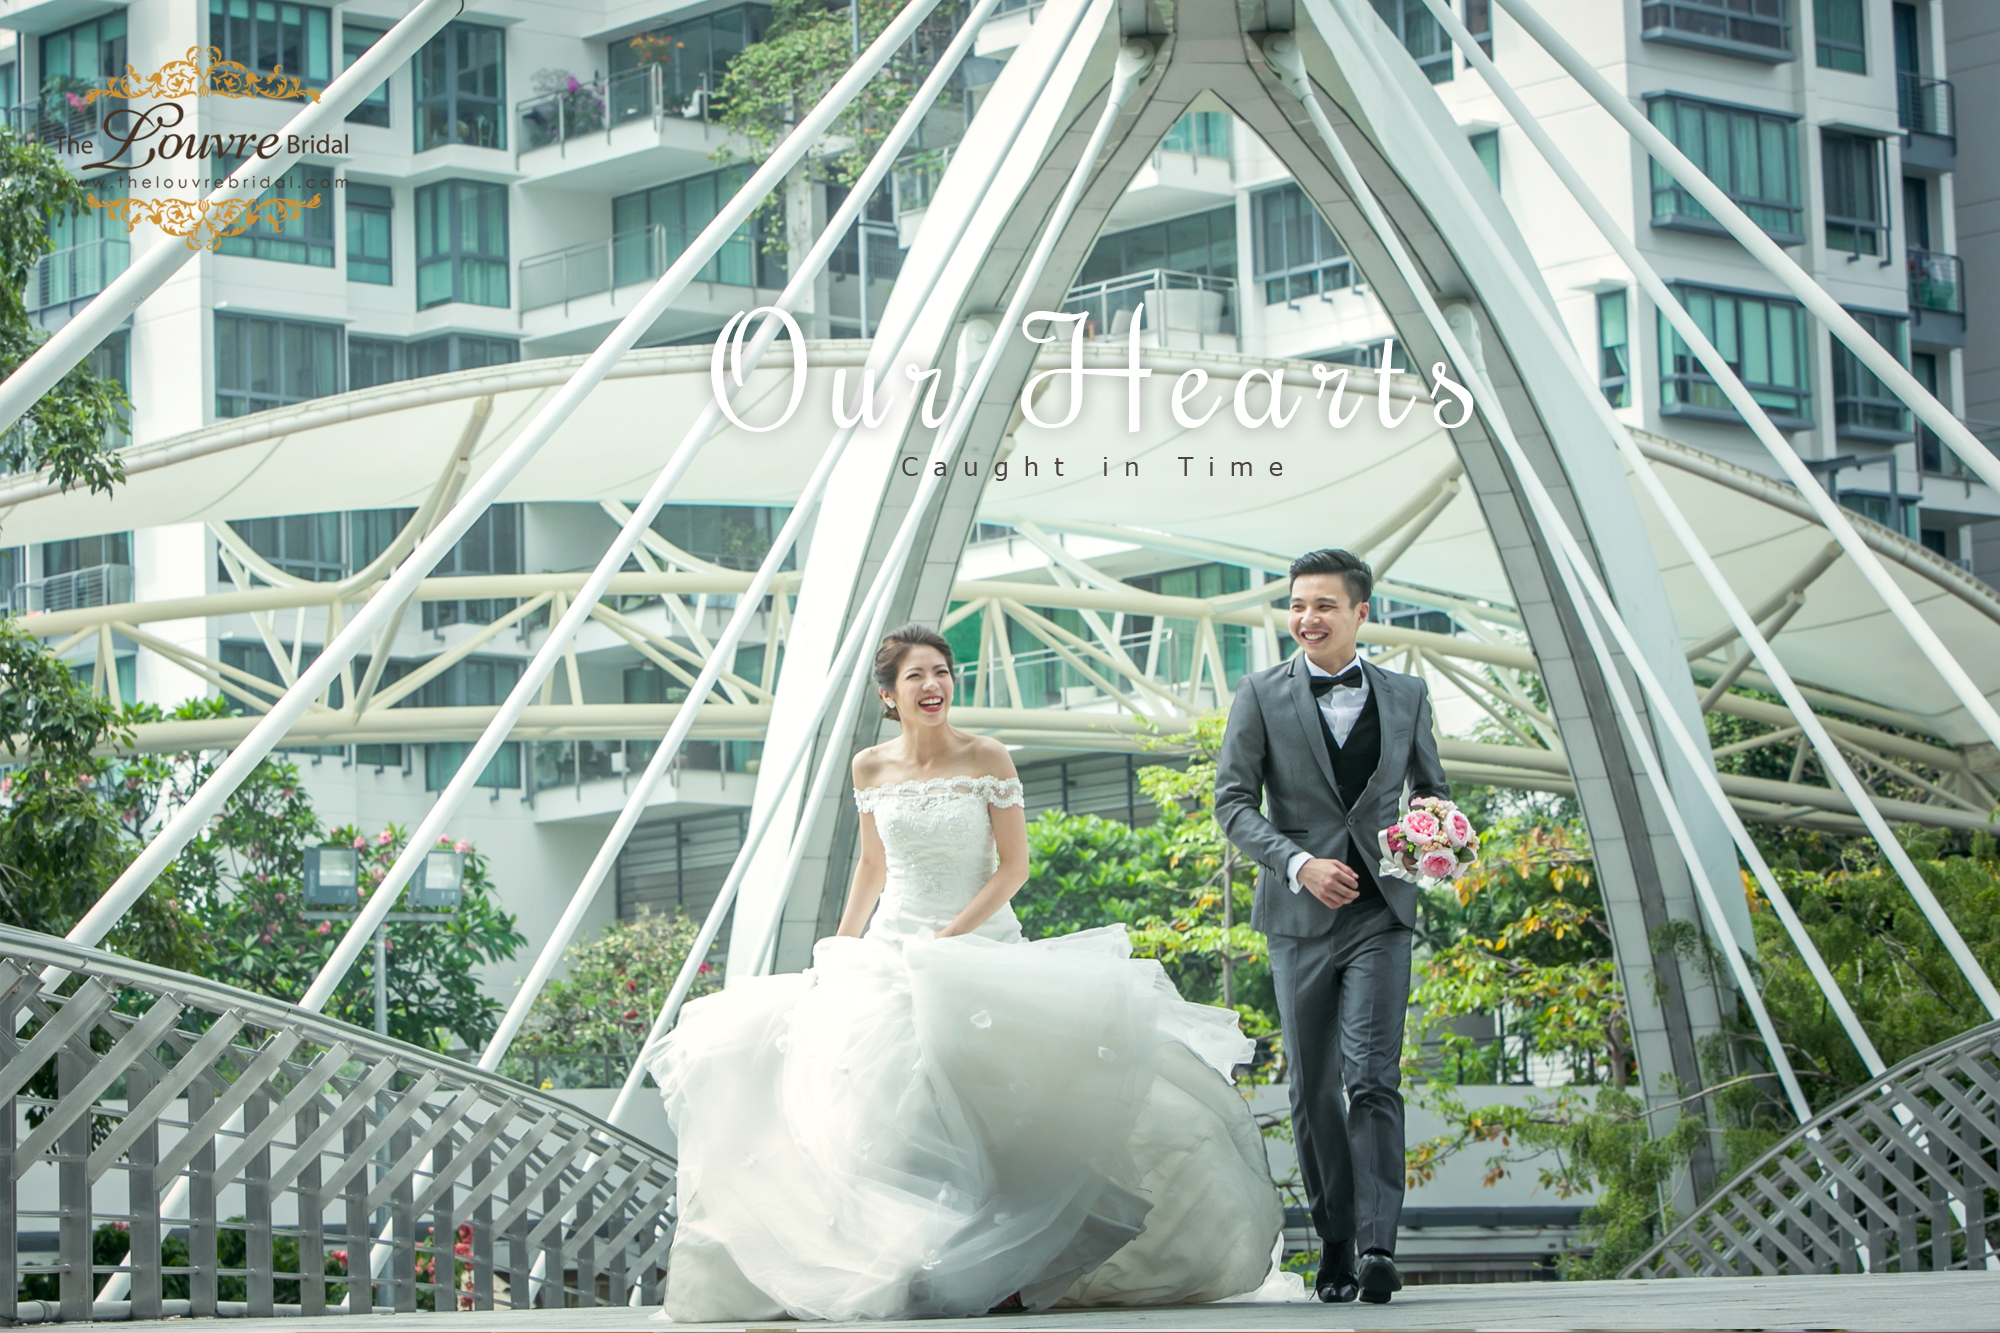 Inspiring Pre-Wedding Photography  – Our Hearts Caught in Time